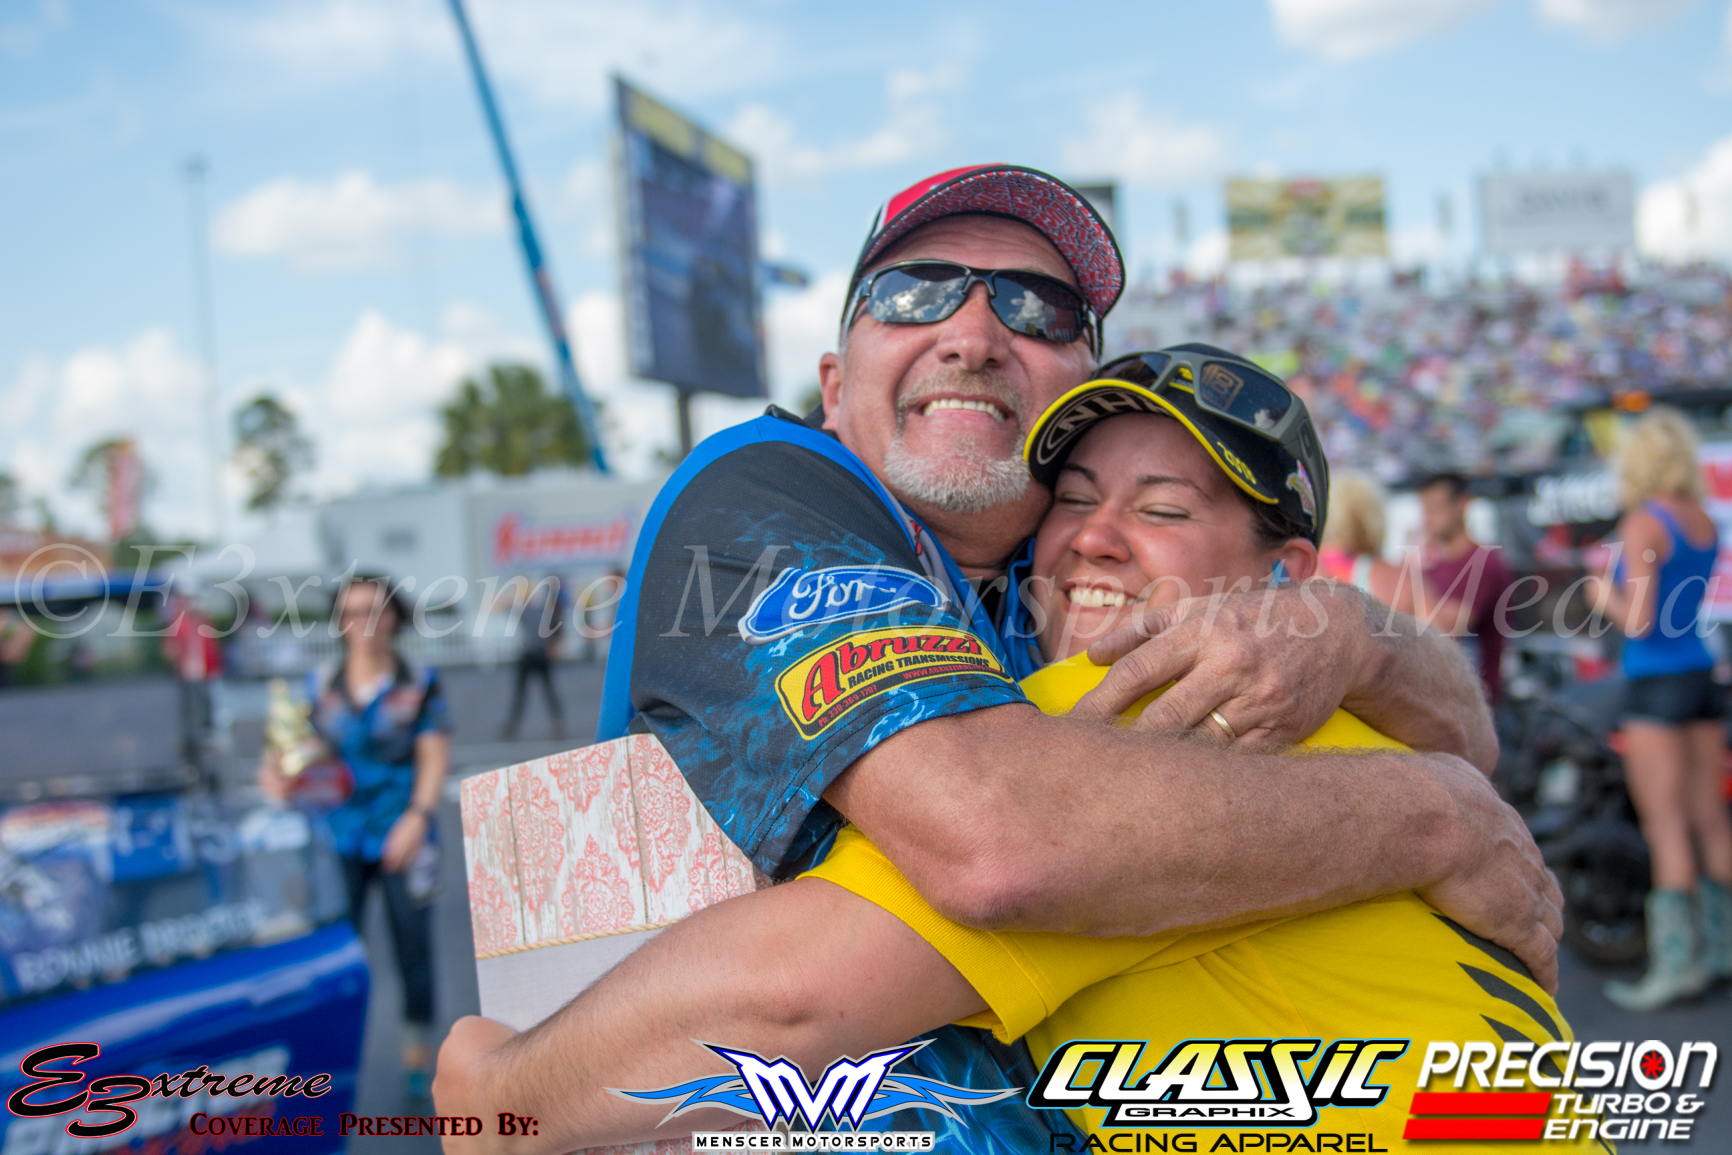 Ronnie celebrates the win with the NHRA staging lane woman.